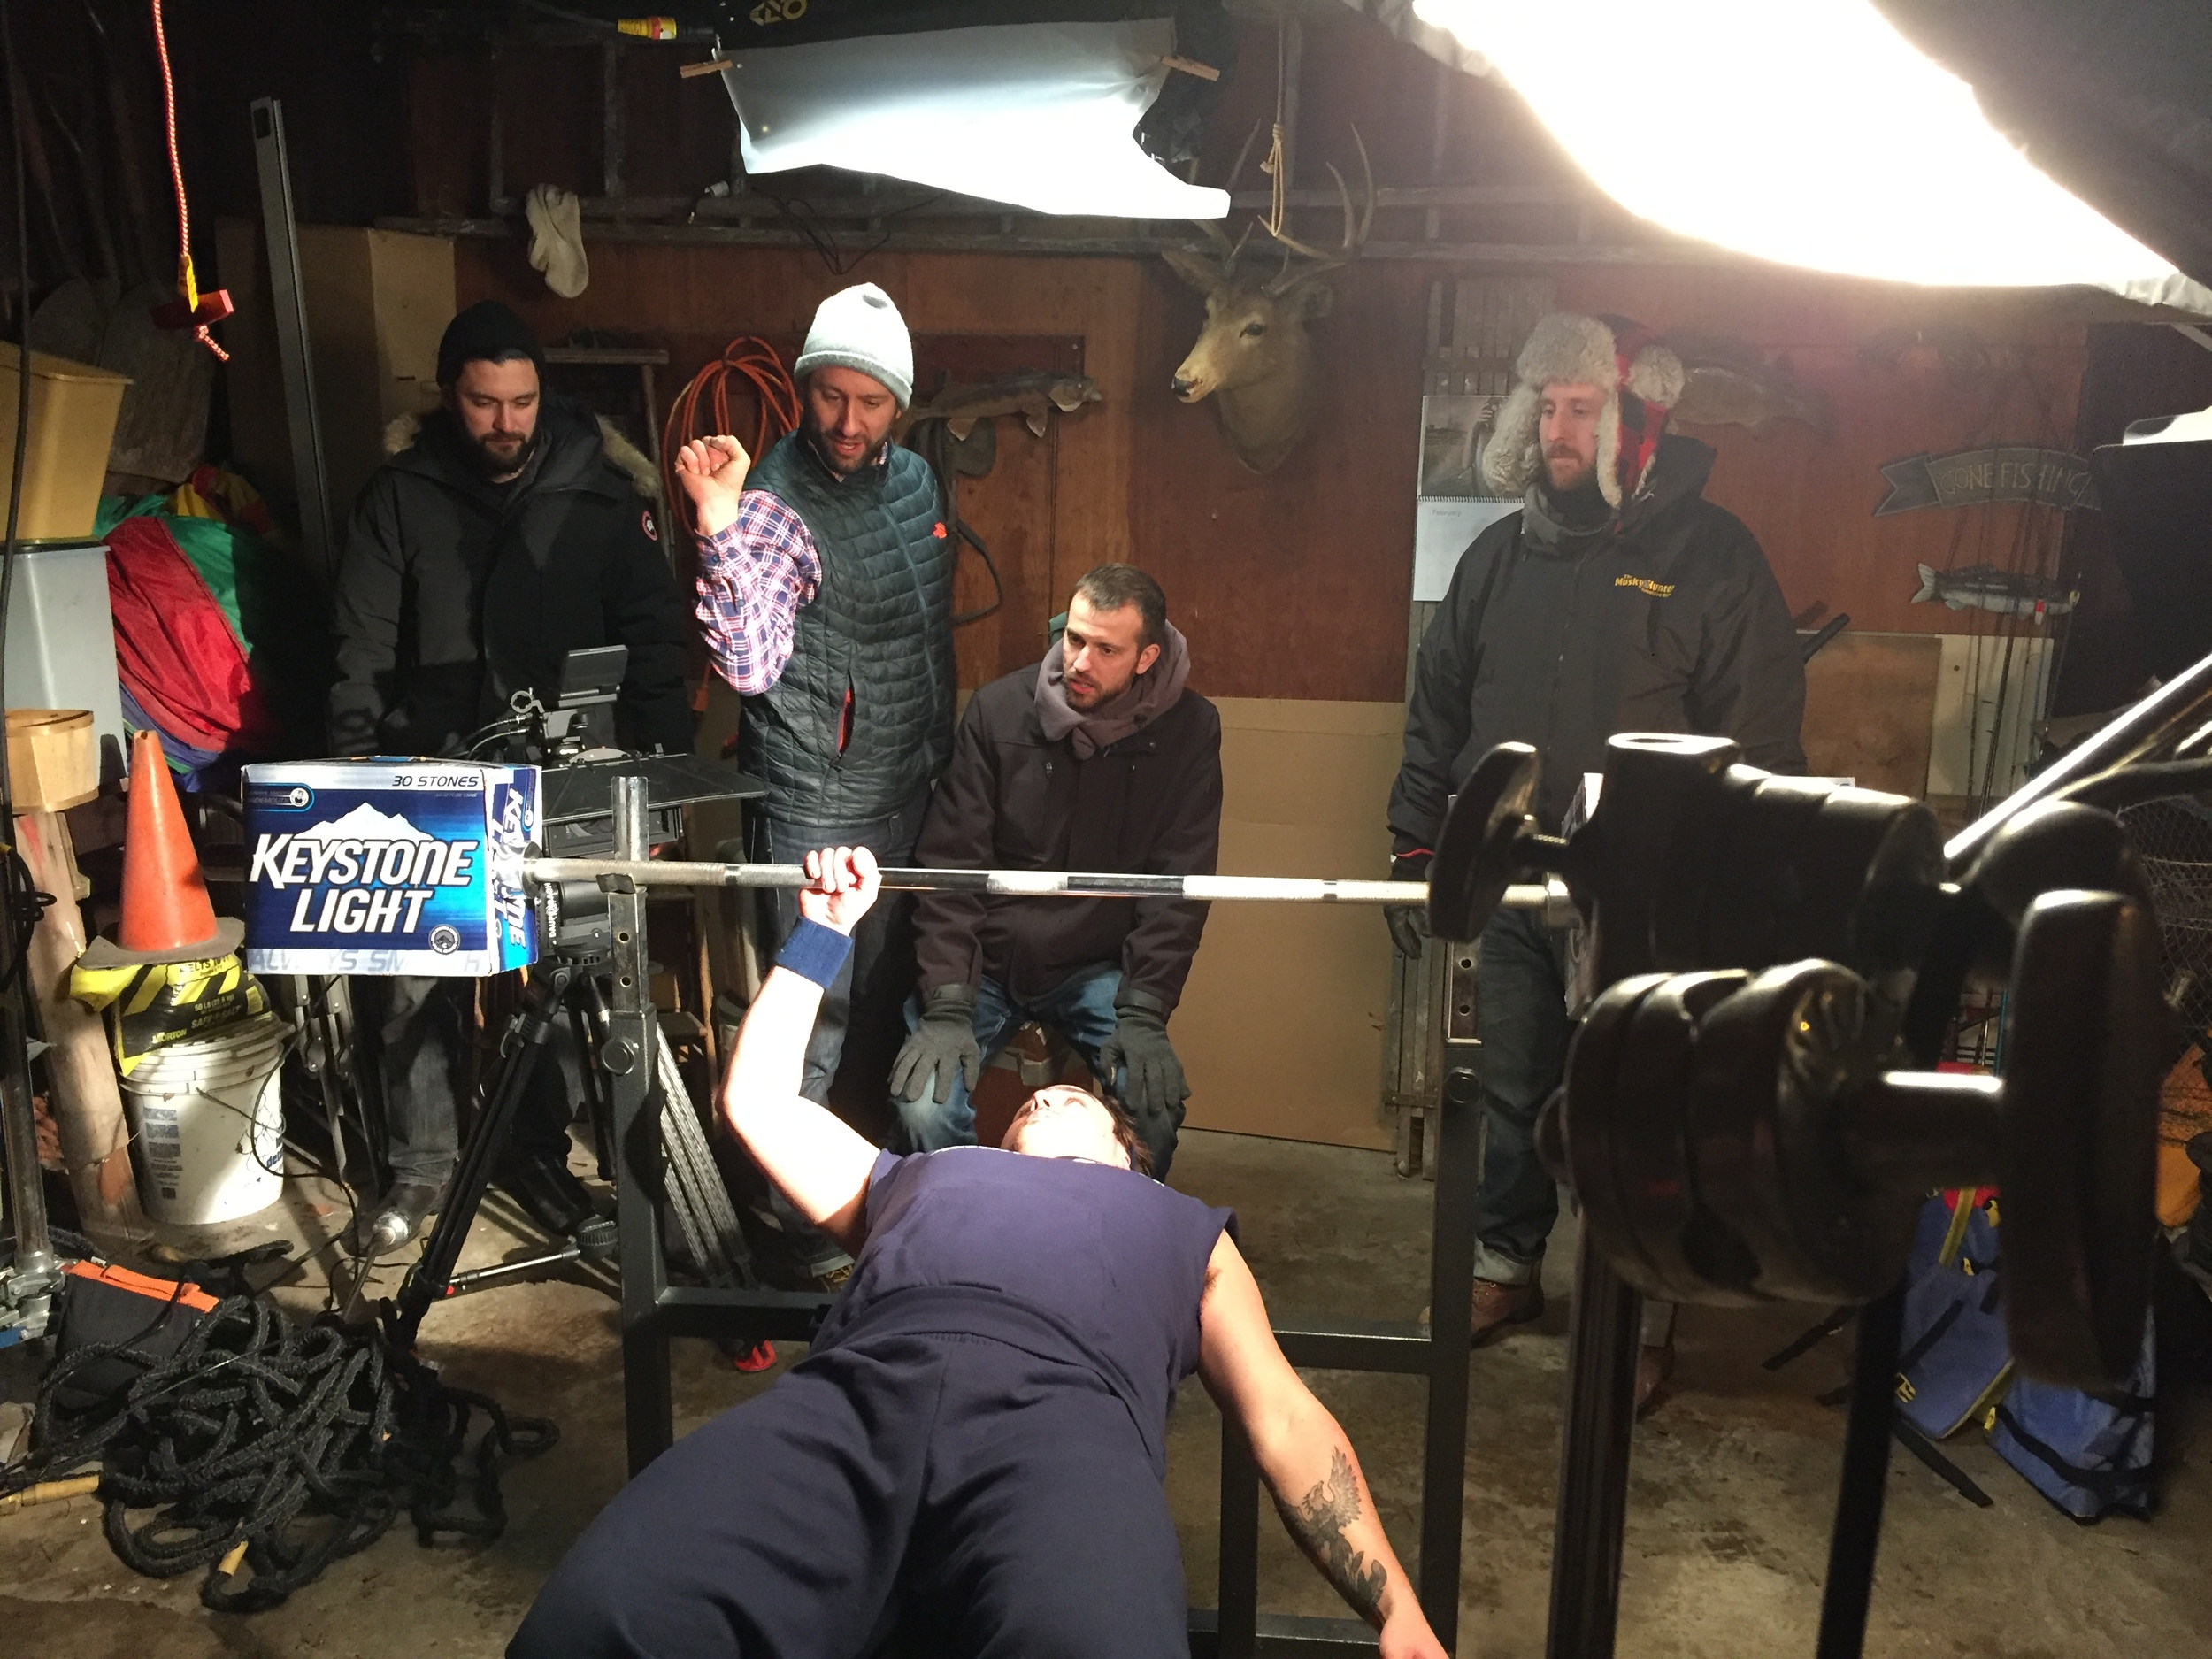 Director Jeremy Pinckert explains what he wants in the bench press scene.